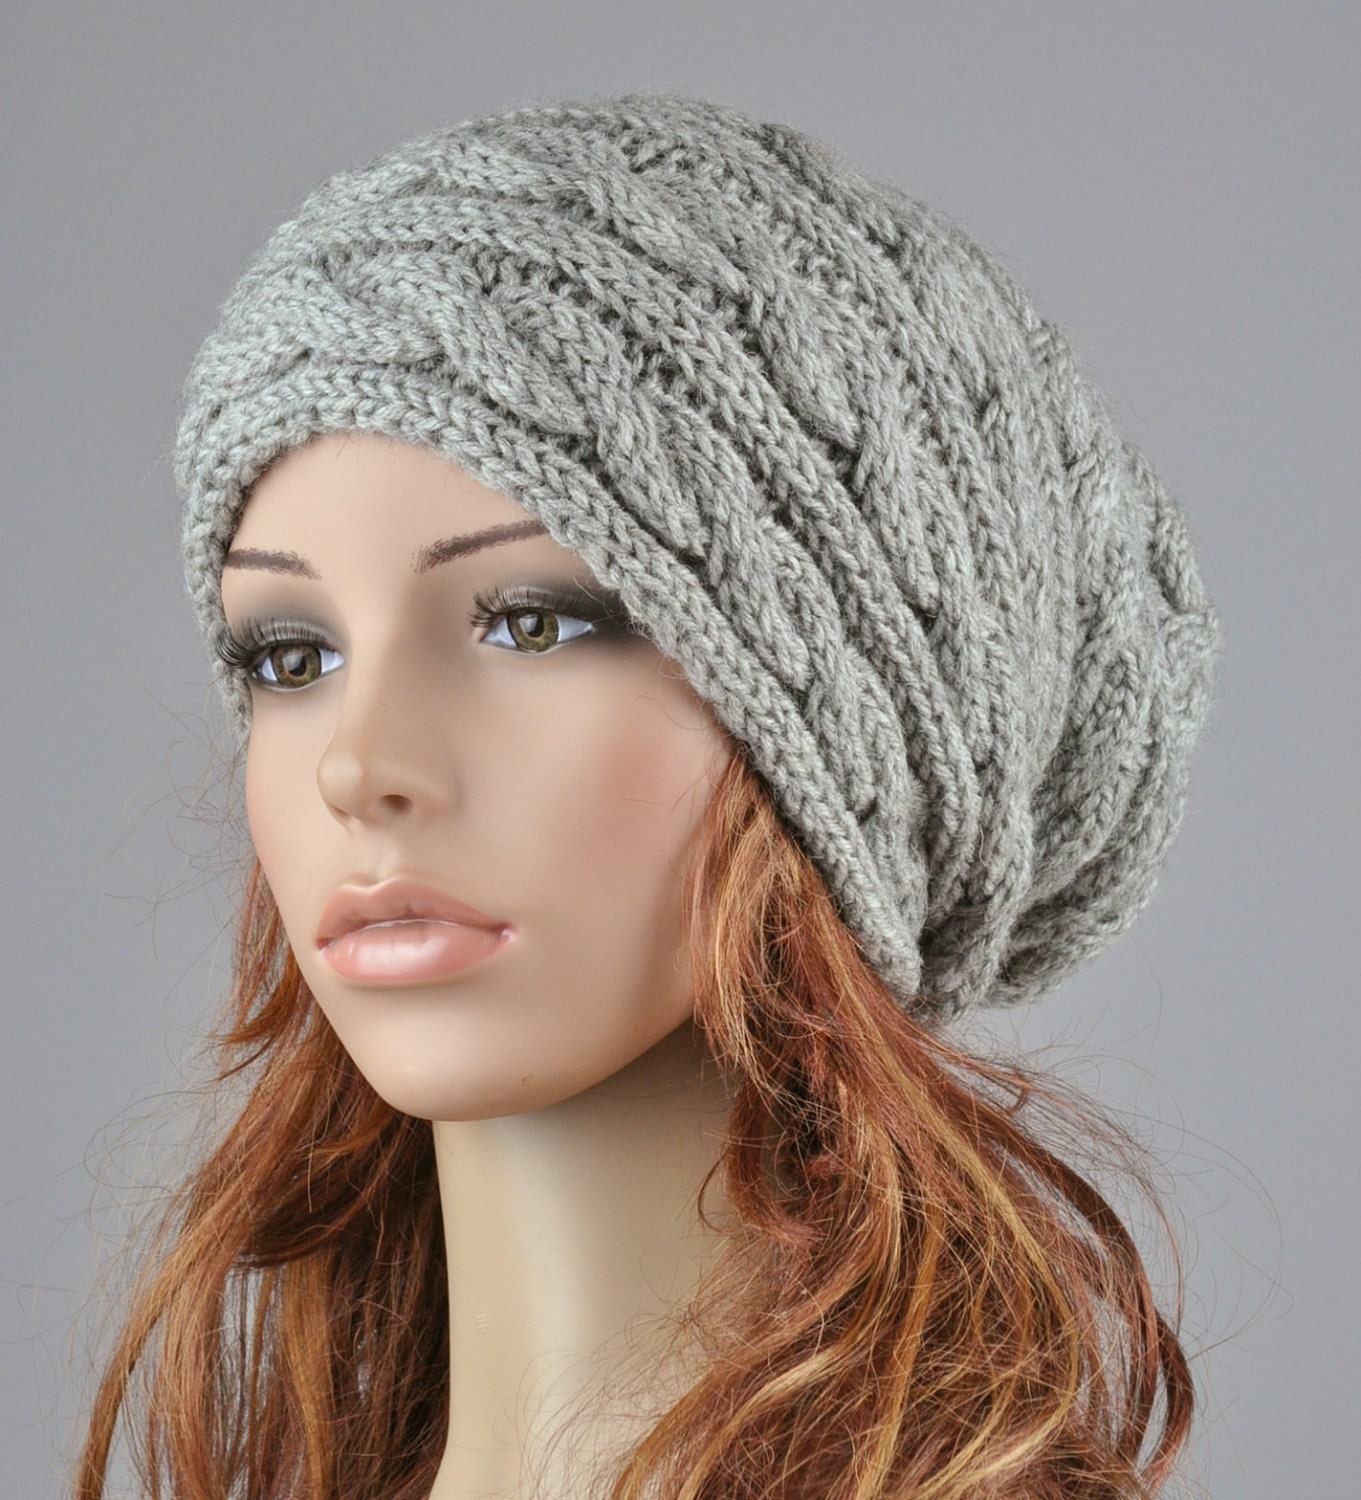 Knitting Patterns Hats : Hand knit hat Grey hat slouchy hat cable pattern hat